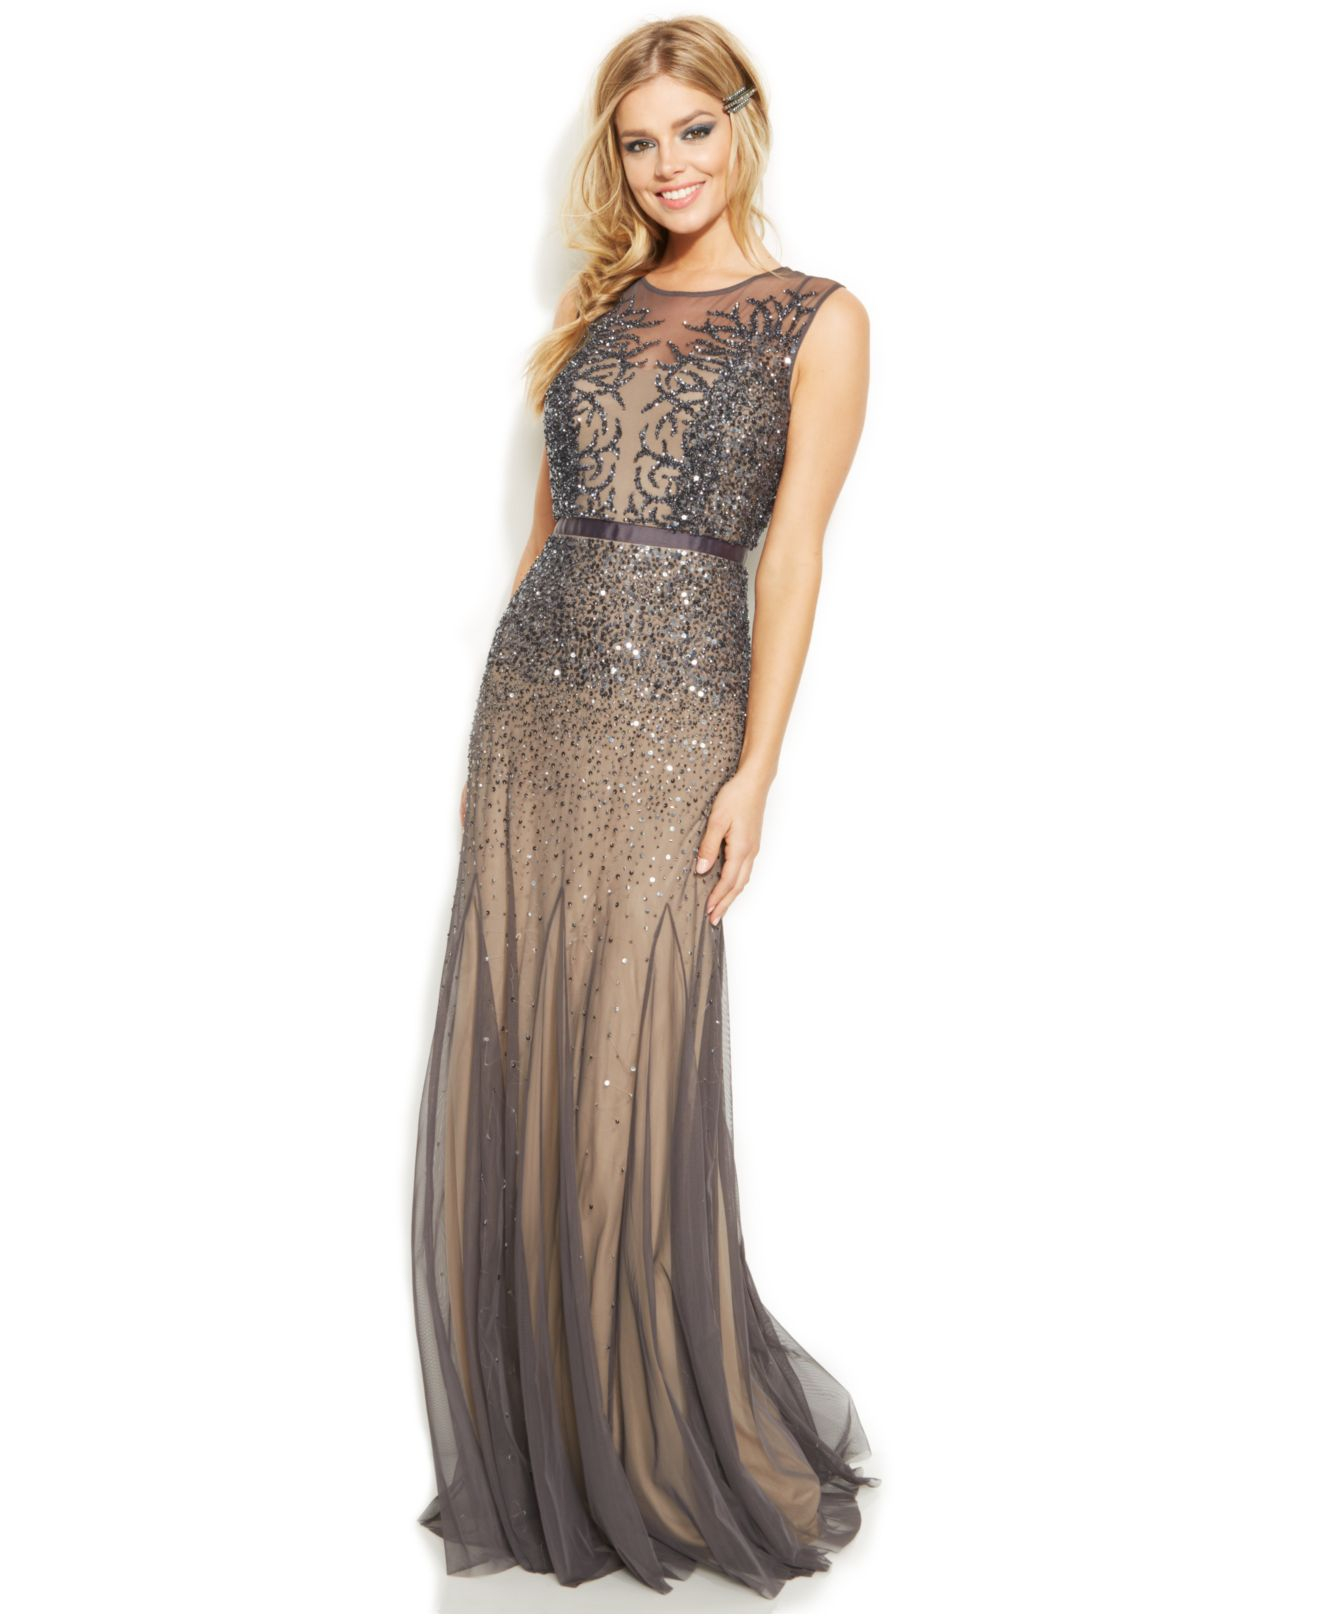 Adrianna Papell Sleeveless Beaded Illusion Gown in Silver